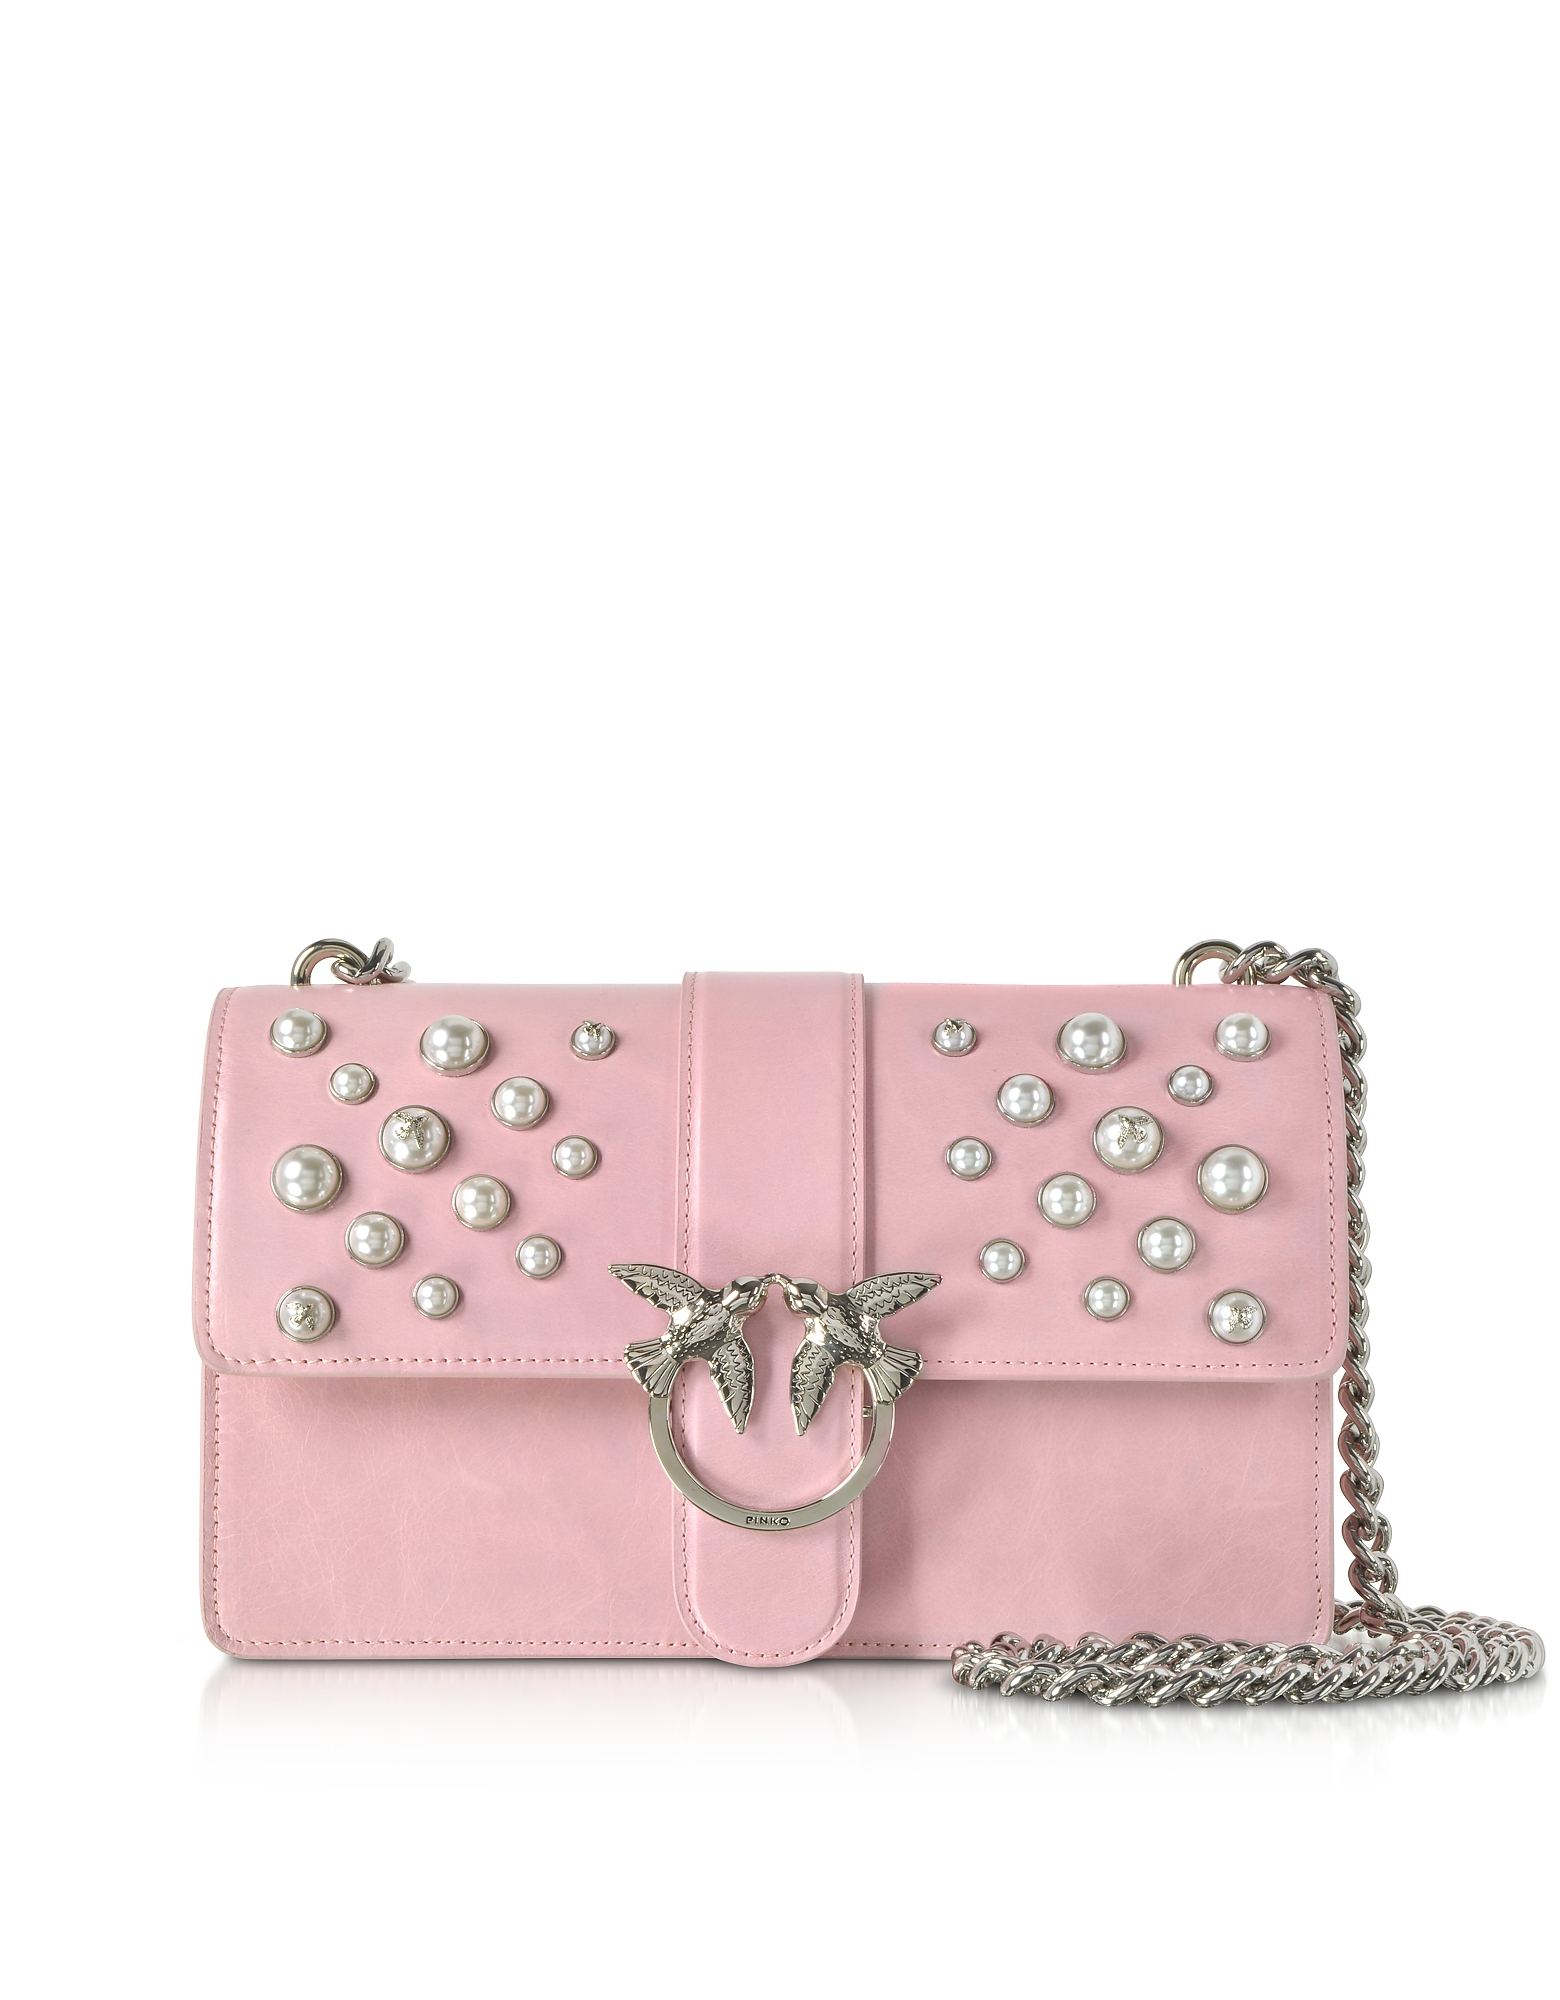 Pinko Handbags, Love Leather Pearls Shoulder Bag